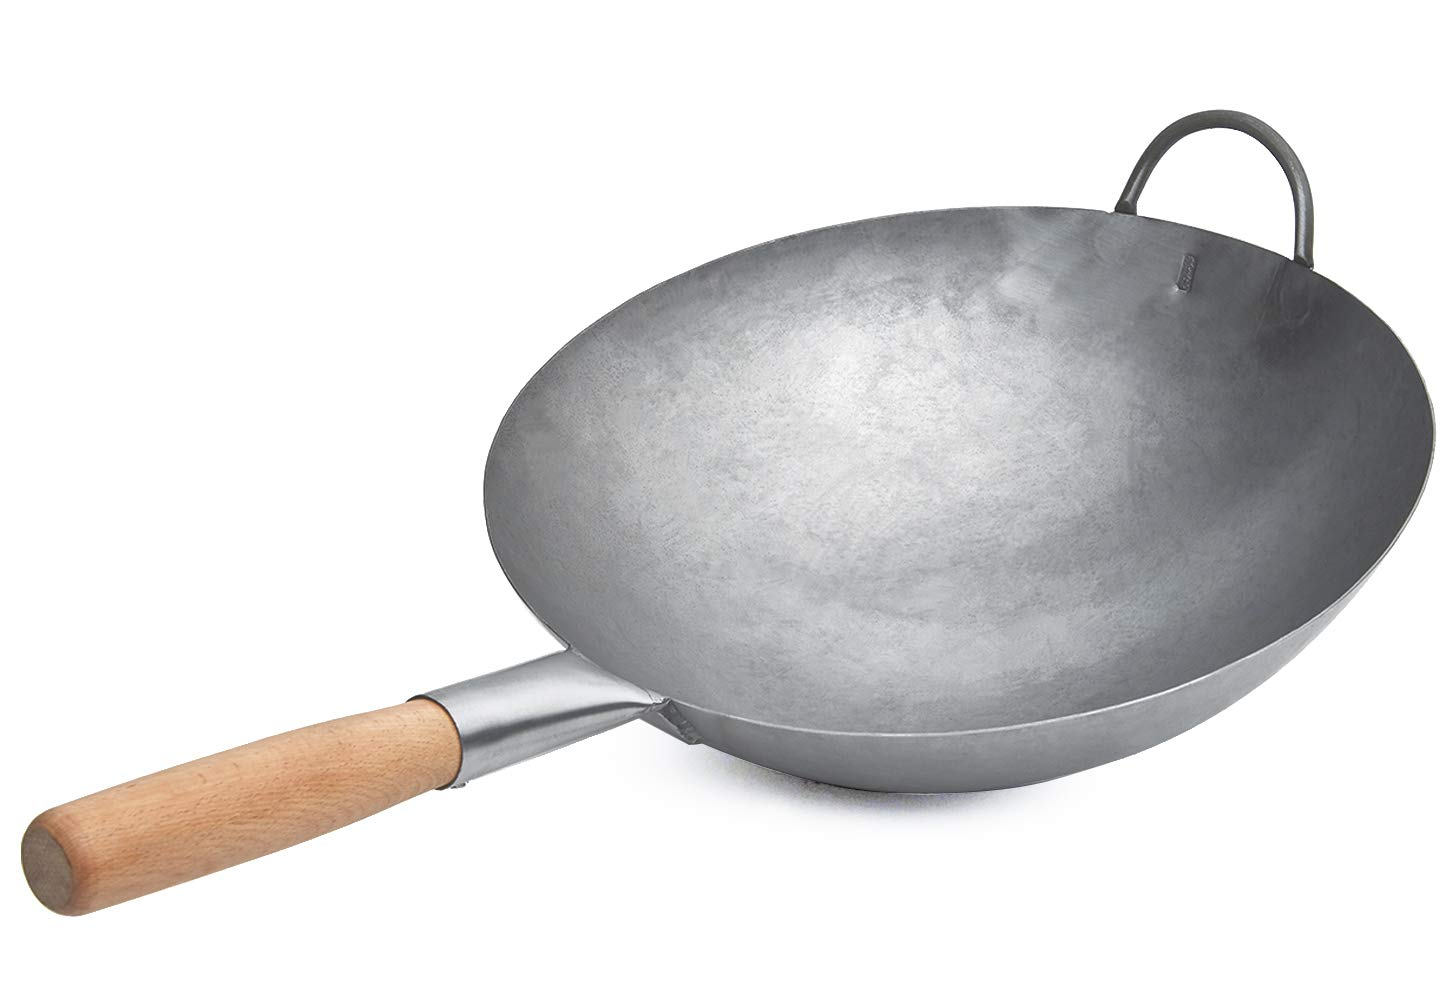 Cast Iron Wok Pan Traditional Hand Hammered Uncoated Non-Stick Fry Pan Cookware with Helper Wooden Handle (14 Inch, Round Bottom Wok)